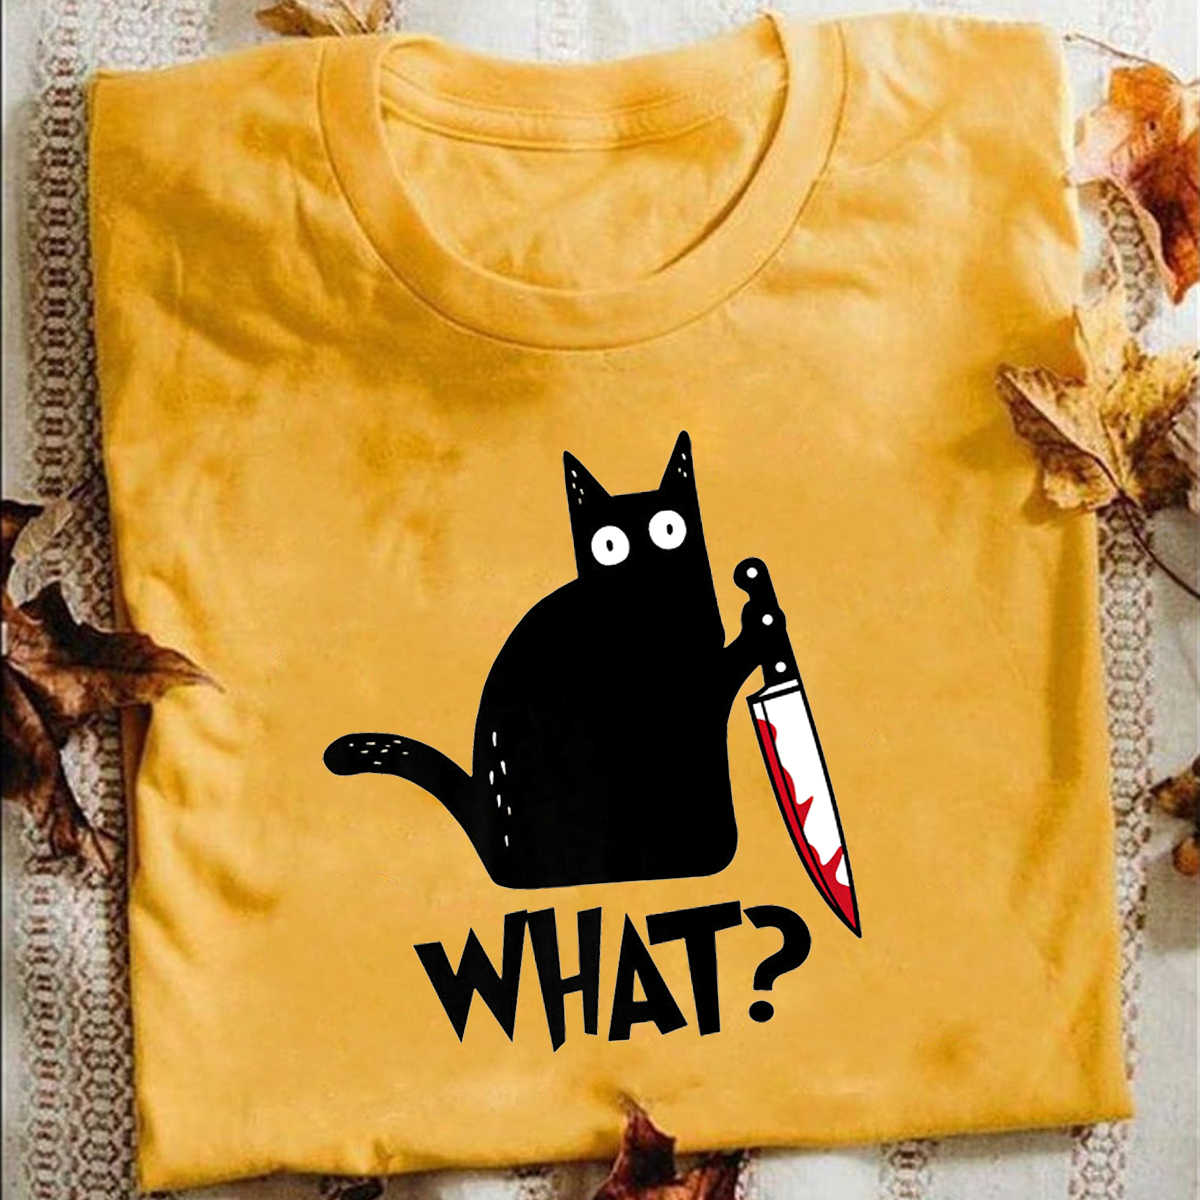 Cat What T Shirt Murderous Cat With Knife Funny Halloween Gift T Shirt Unisex High quality cotton t-shirts for men and women